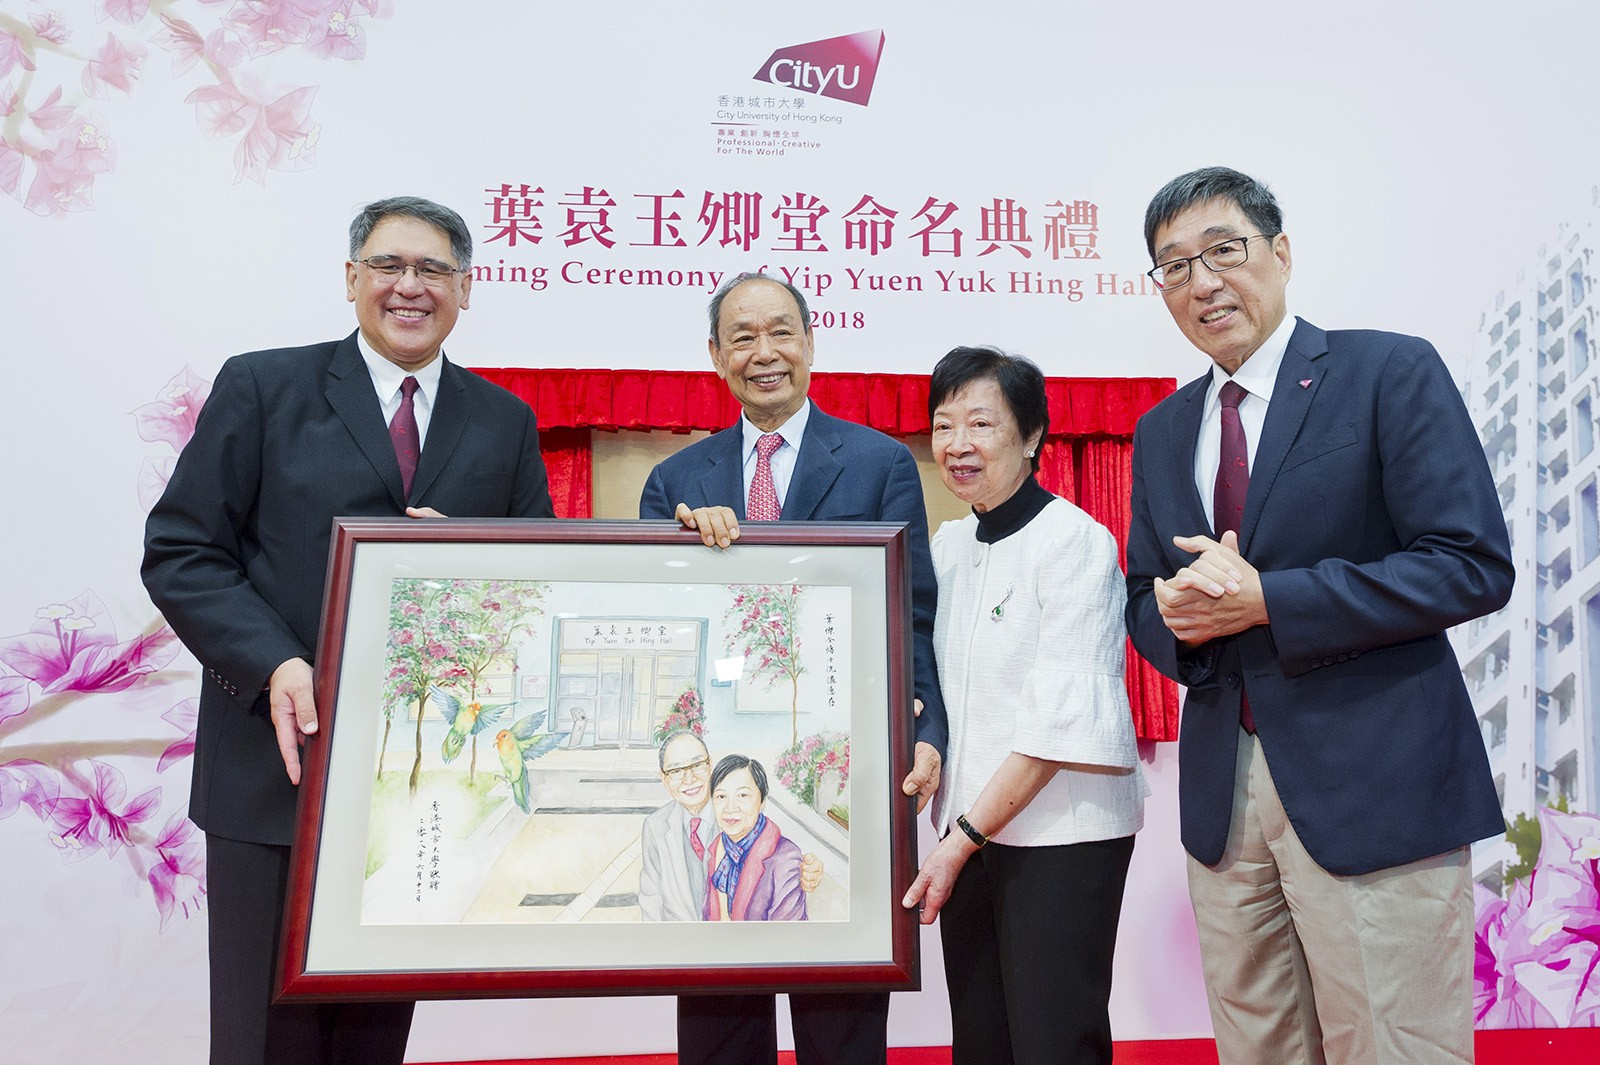 Mr Huang (first from left) and Professor Kuo (first from right) present a souvenir to Dr Yip and Mrs Yip.